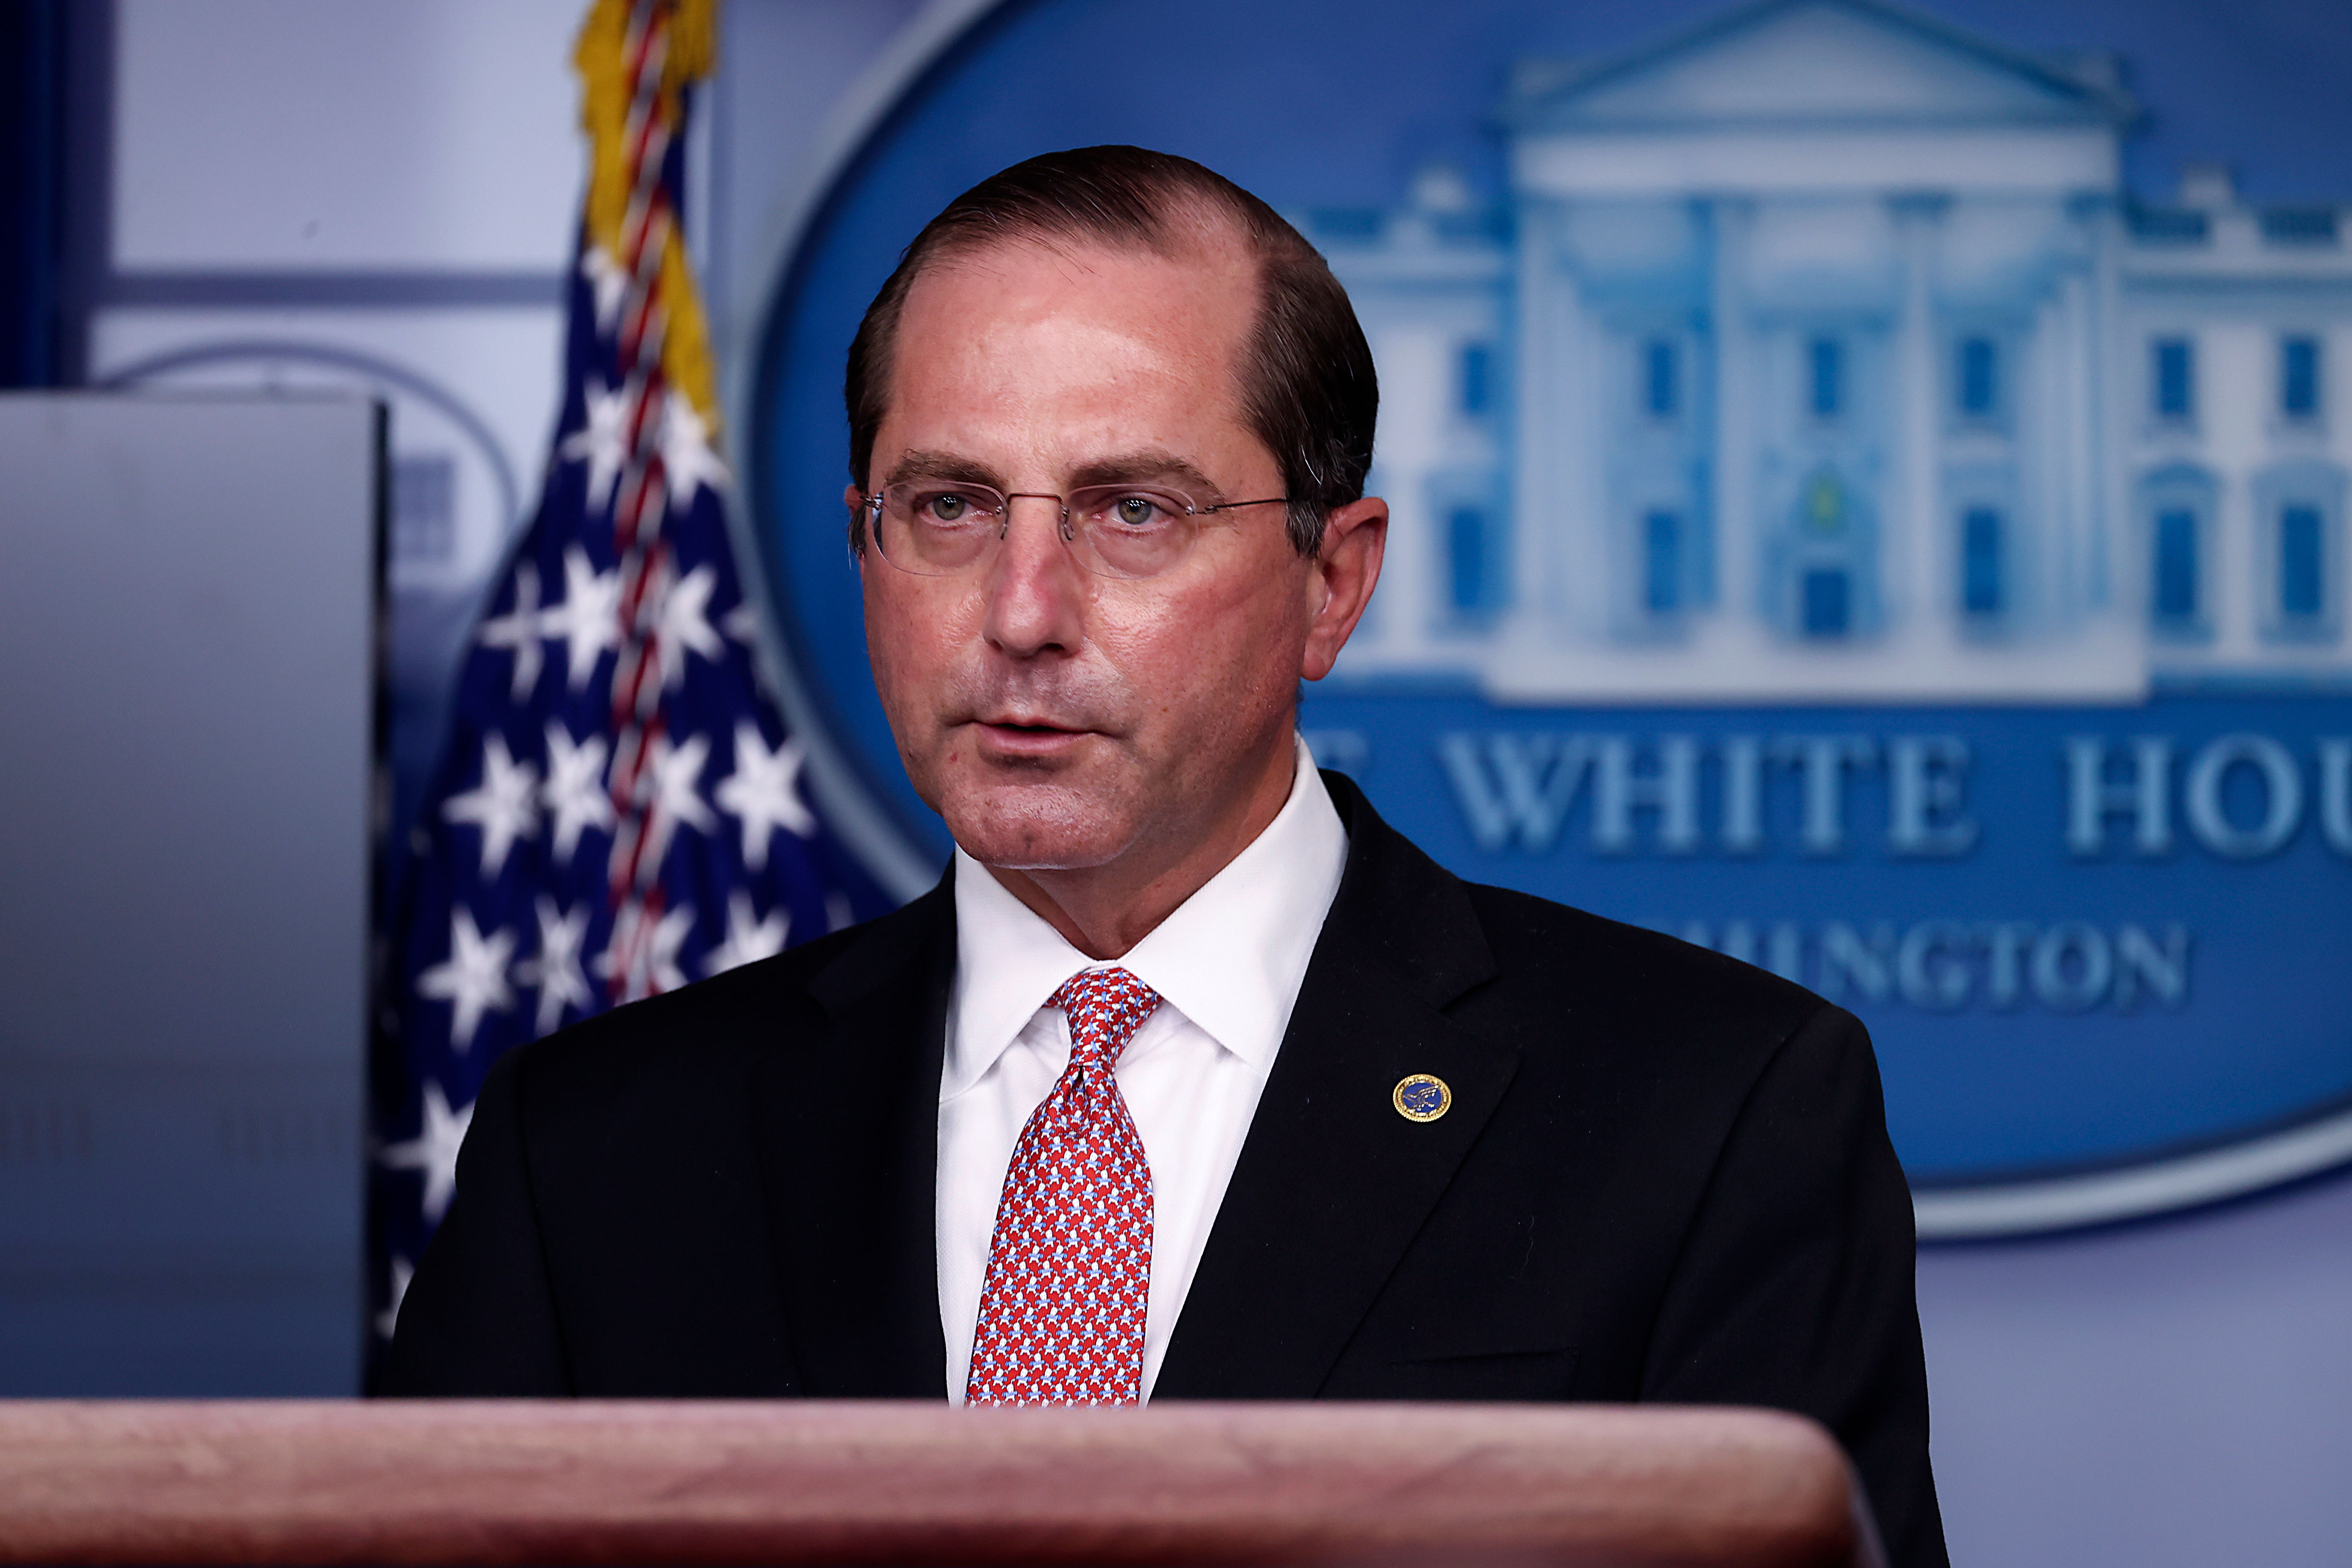 Alex Azar, US secretary of Health and Human Services, speaks during a press briefing at the White House on November 19.